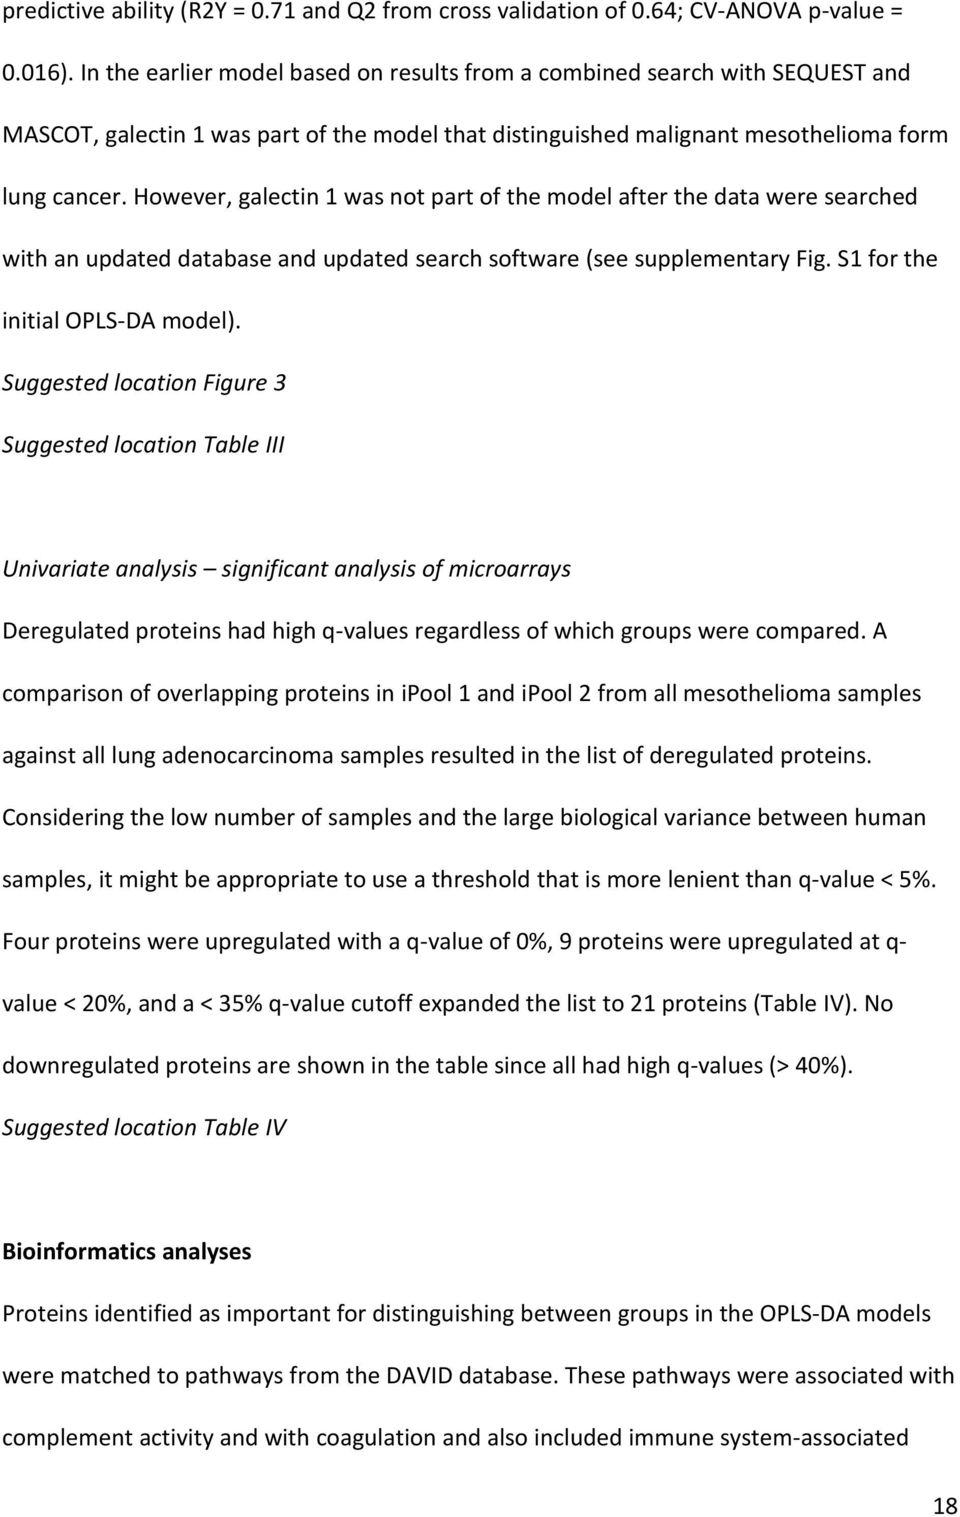 However, galectin 1 was not part of the model after the data were searched with an updated database and updated search software (see supplementary Fig. S1 for the initial OPLS-DA model).